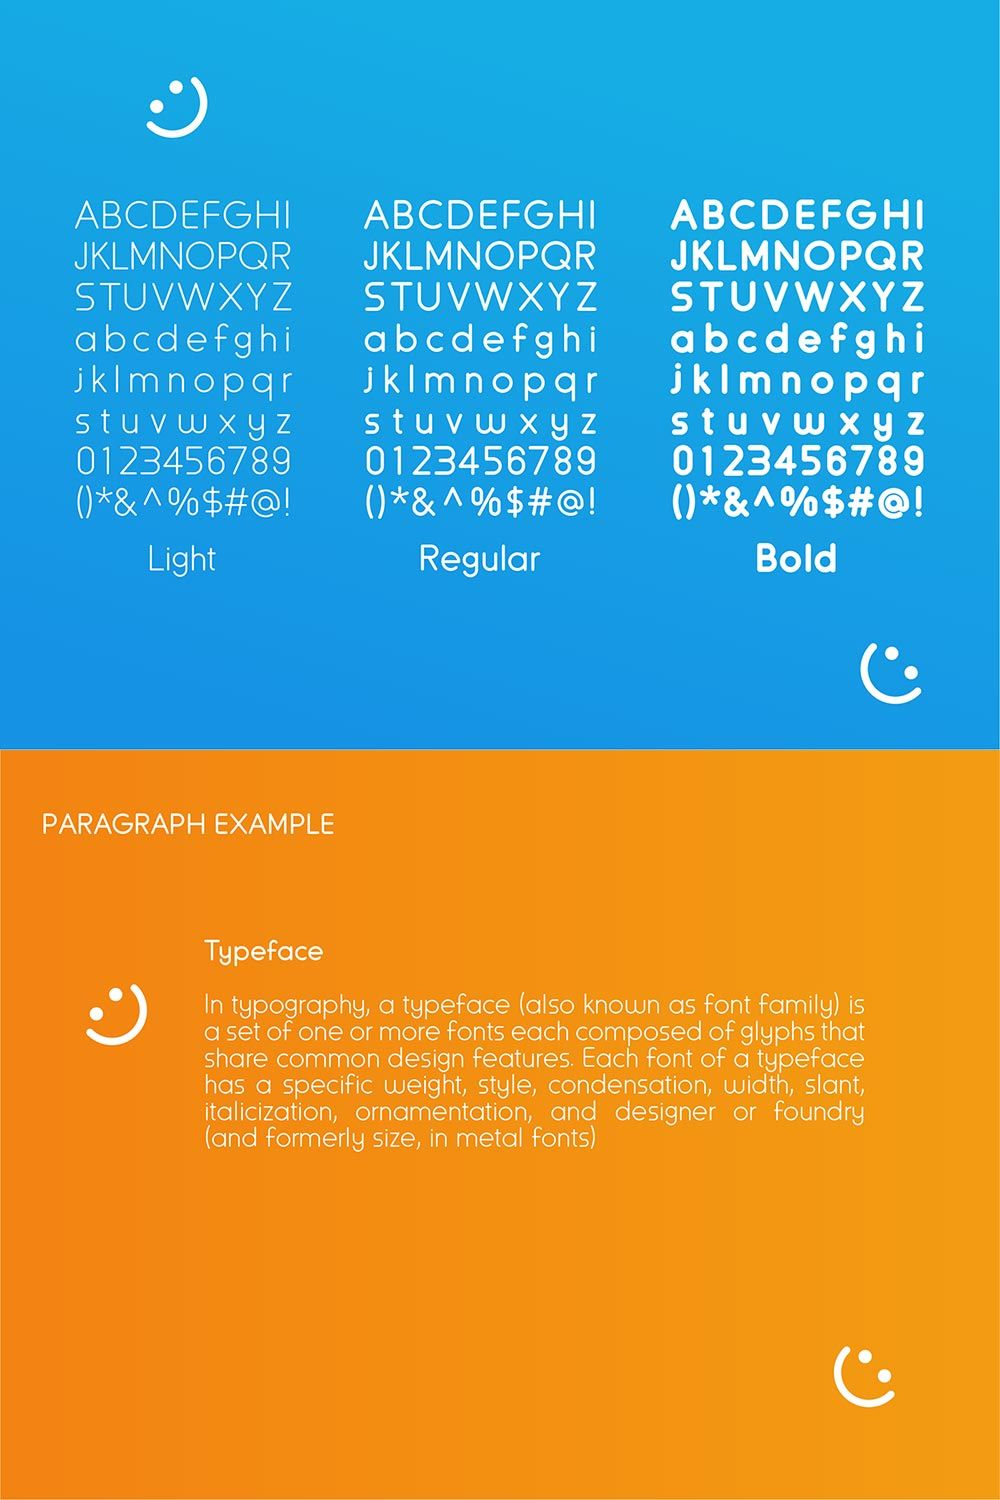 Free Smile Rounded Font | Formidable Fonts | Round font, Psd